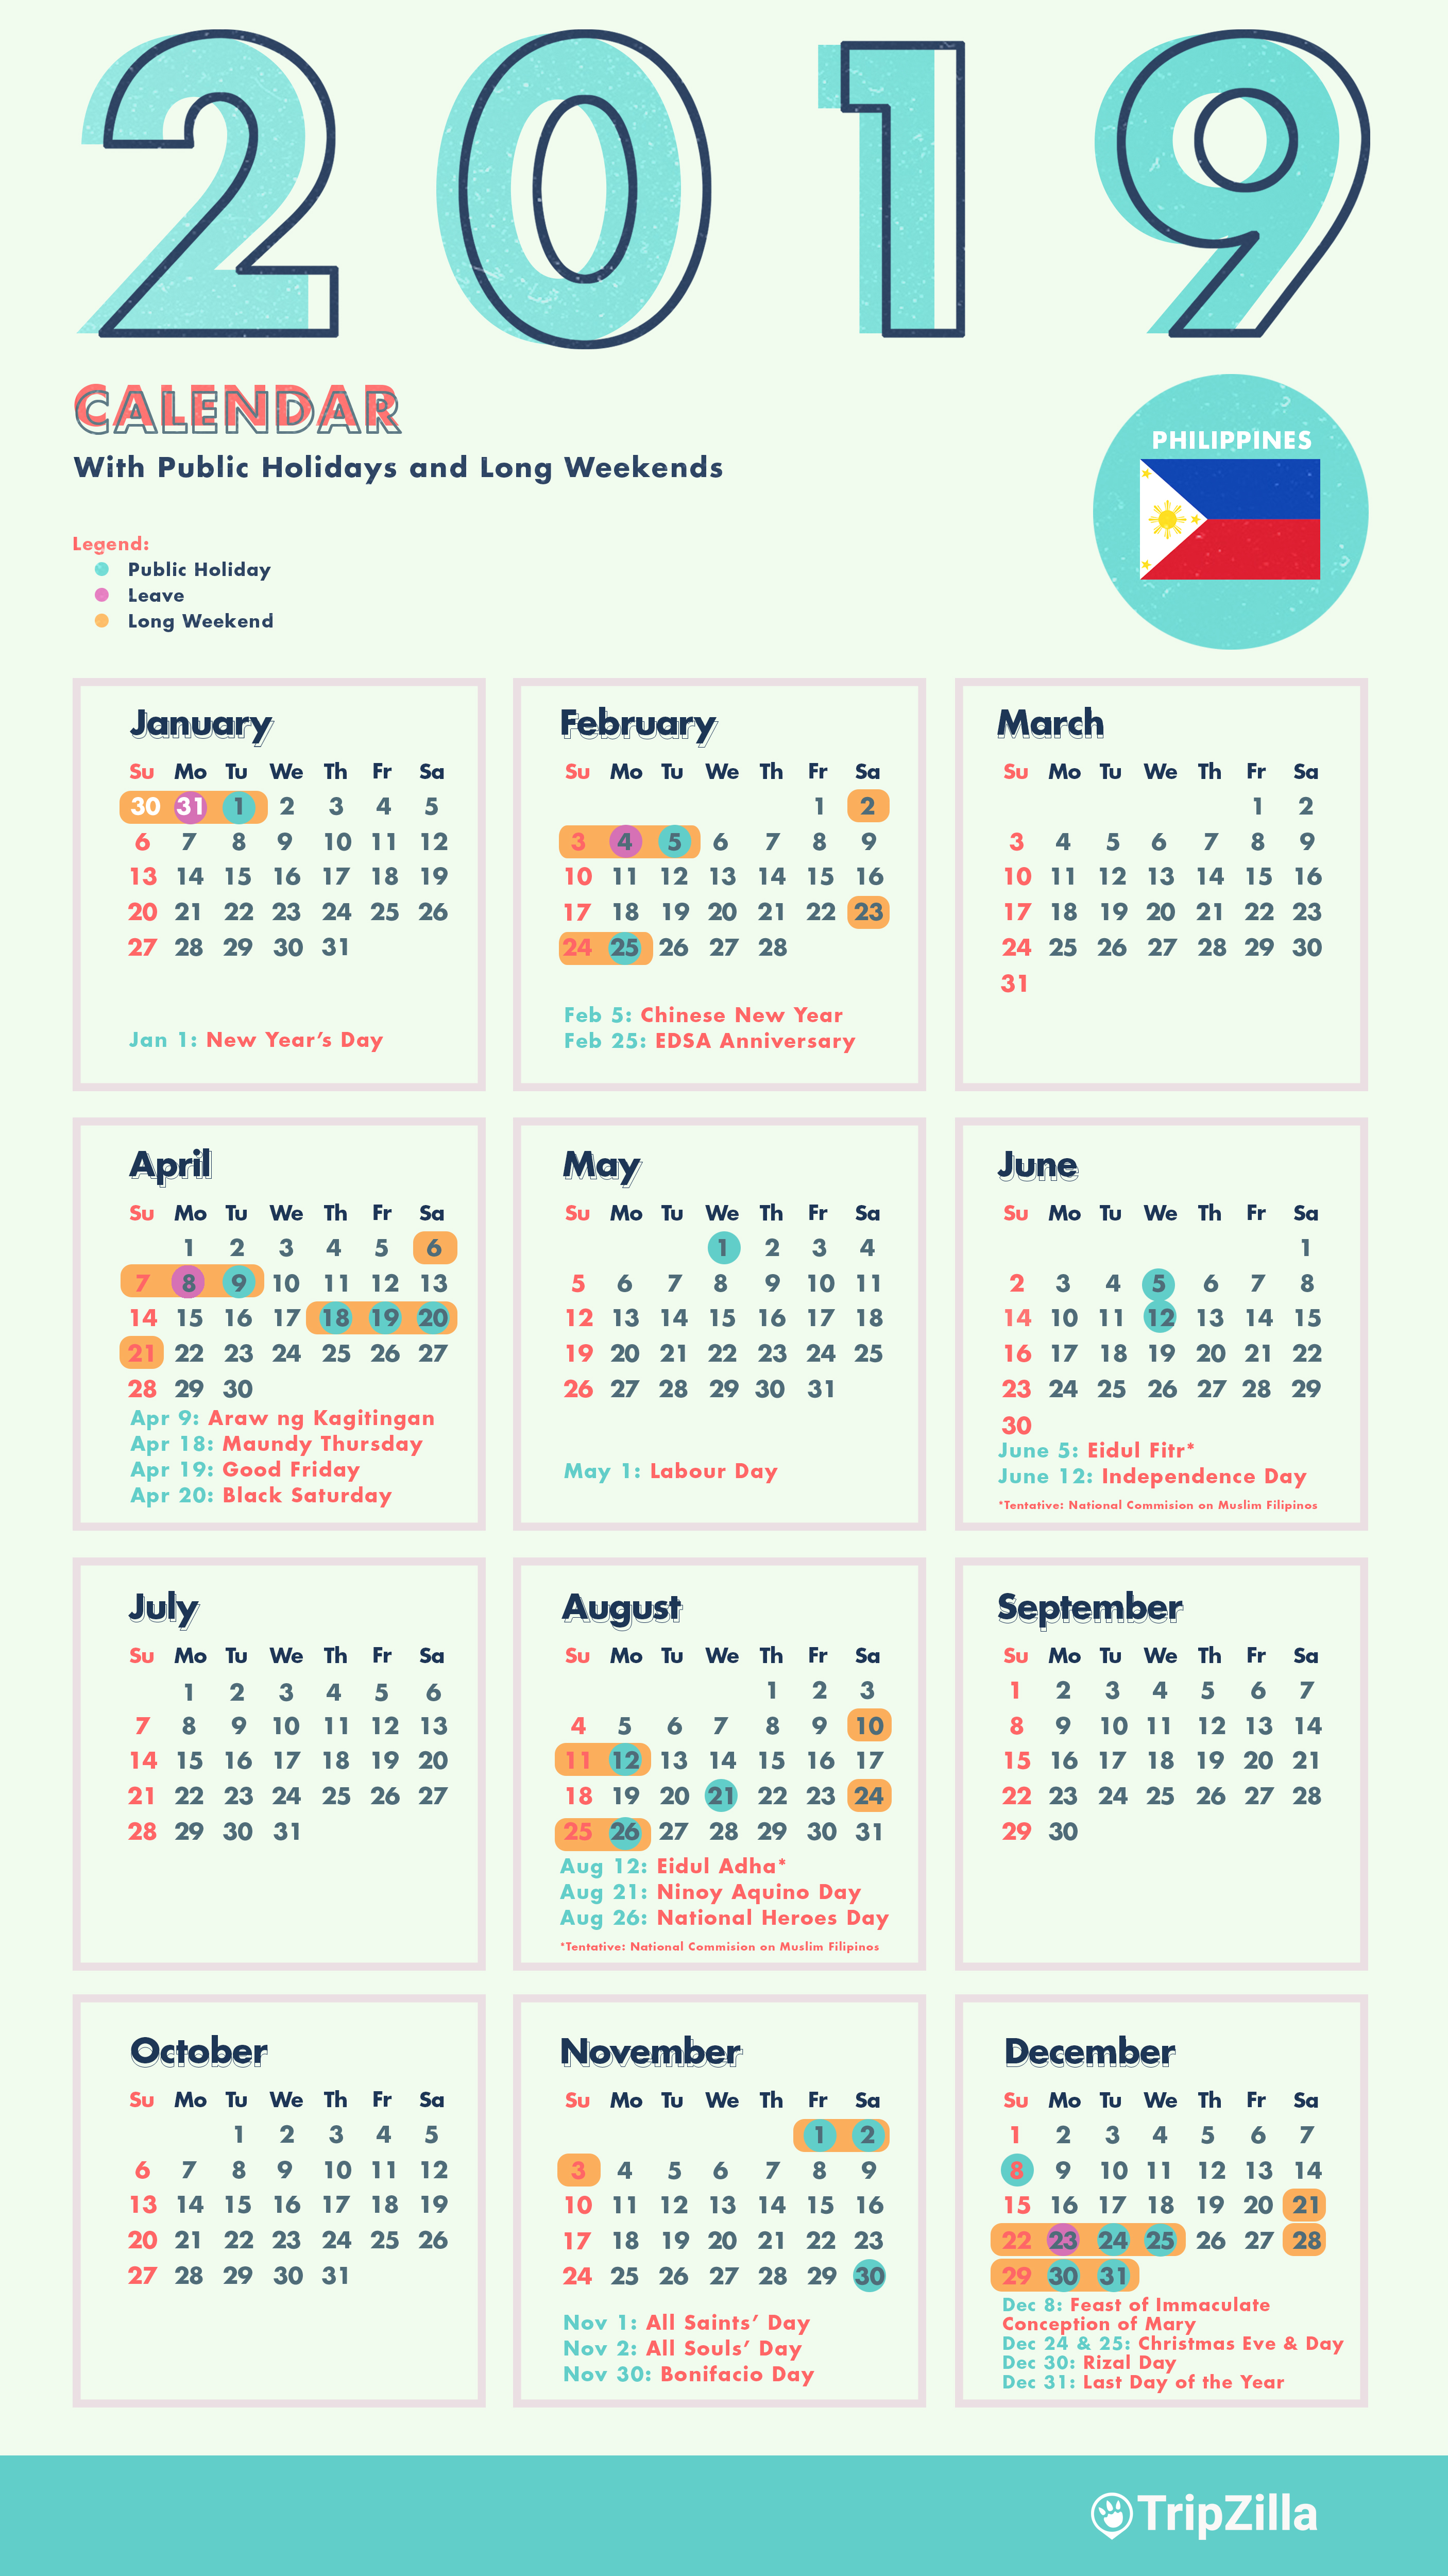 Calendar For Year 2019 New Zealand With 10 Long Weekends In The Philippines Cheatsheet